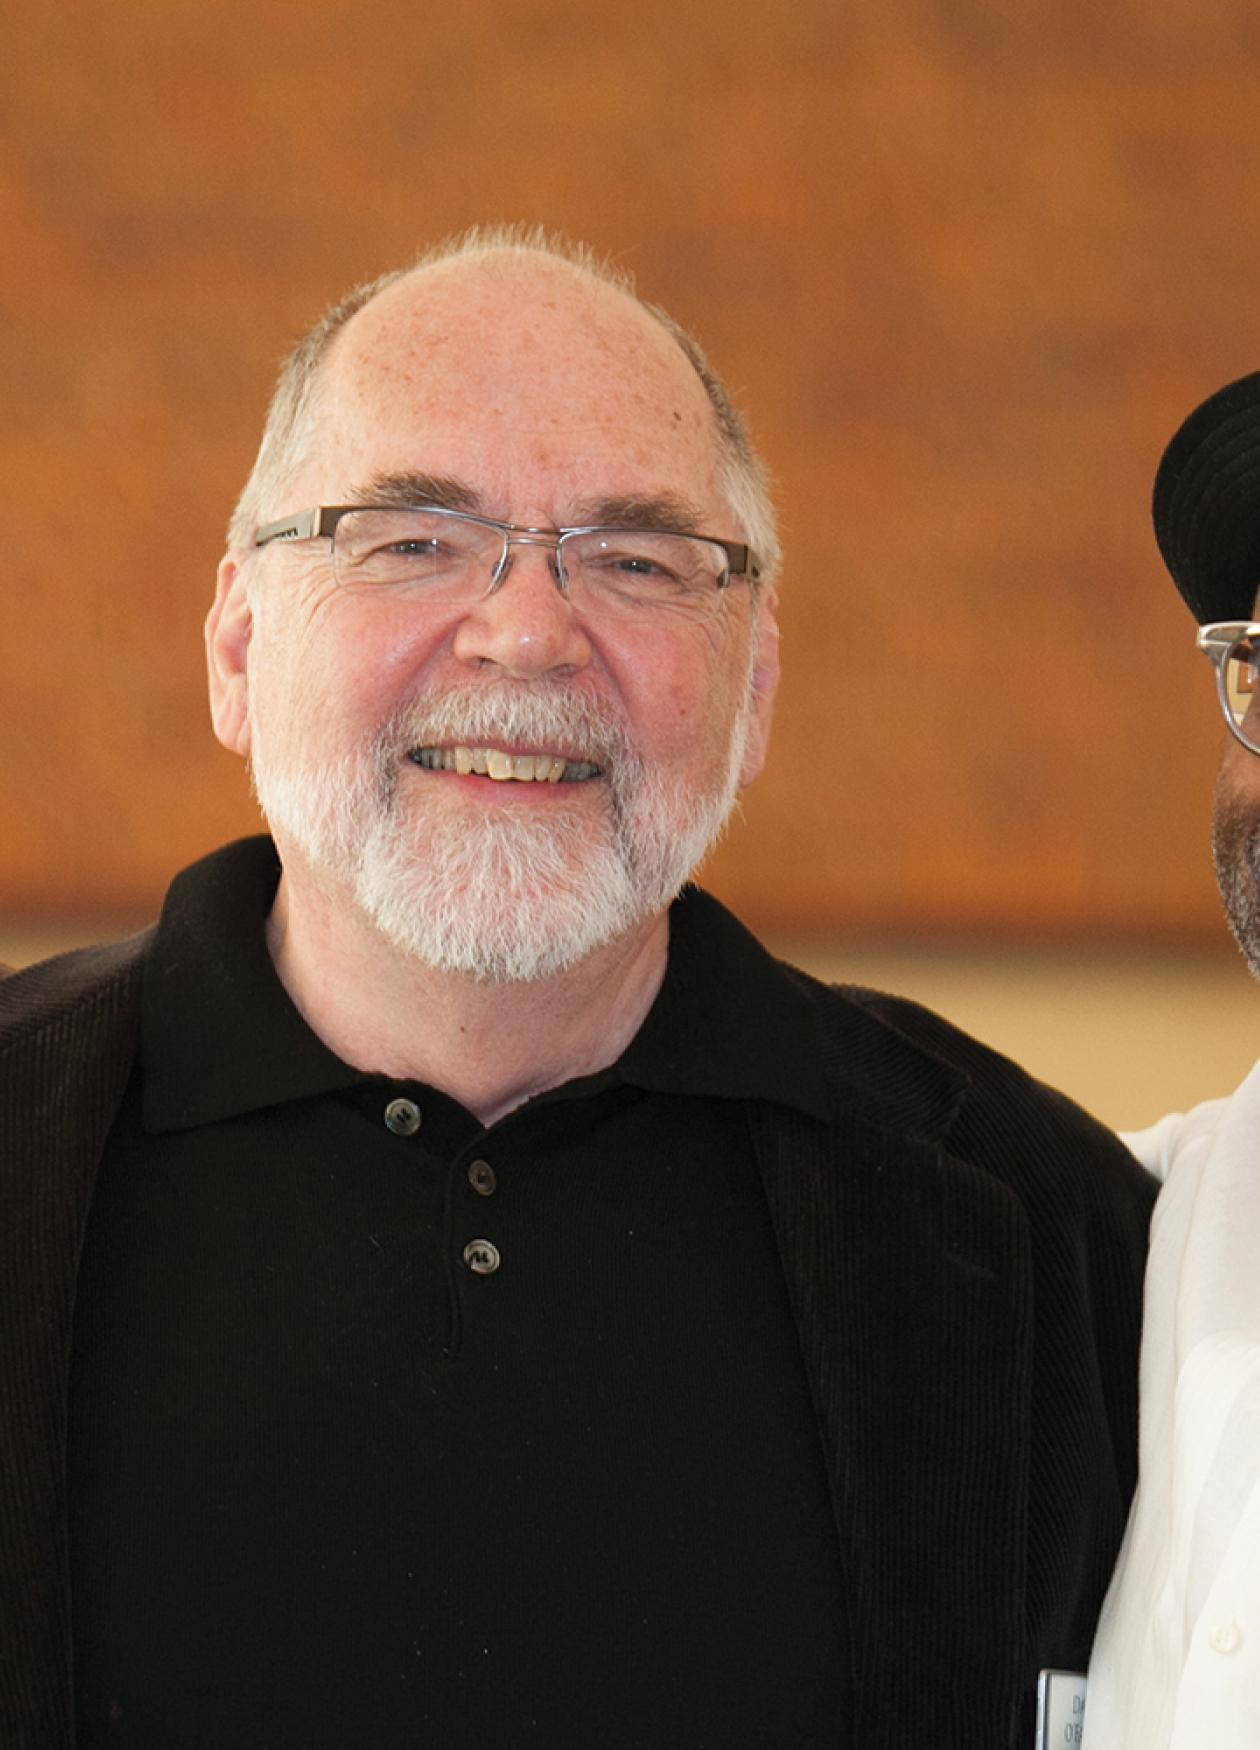 O'Fallon, black turtleneck and glasses, and Jones, wearing a black hat and glasses